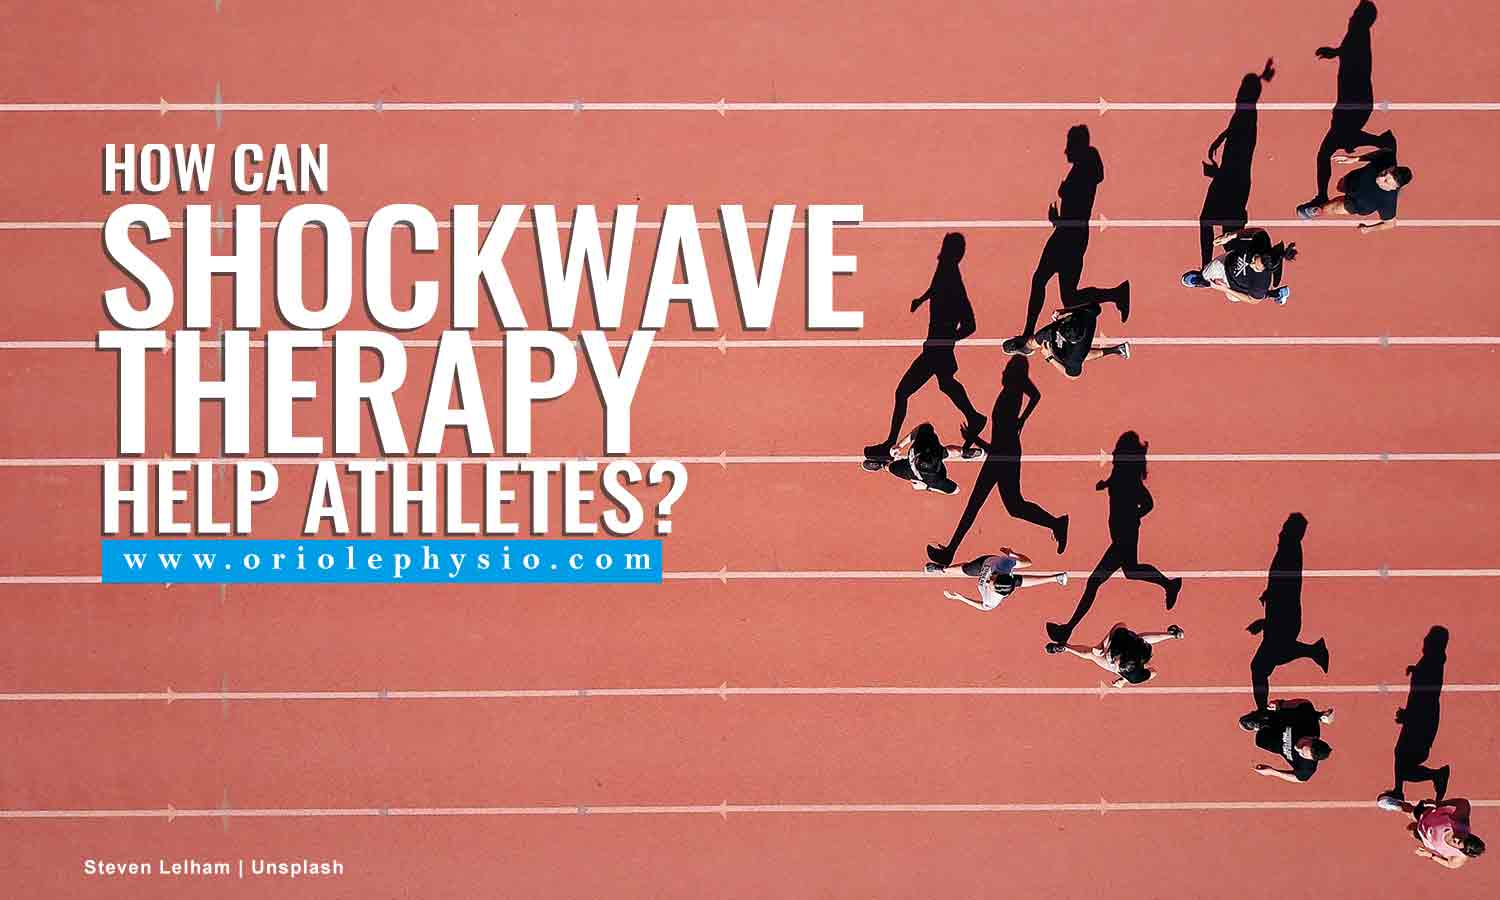 How Can Shockwave Therapy Help Athletes?